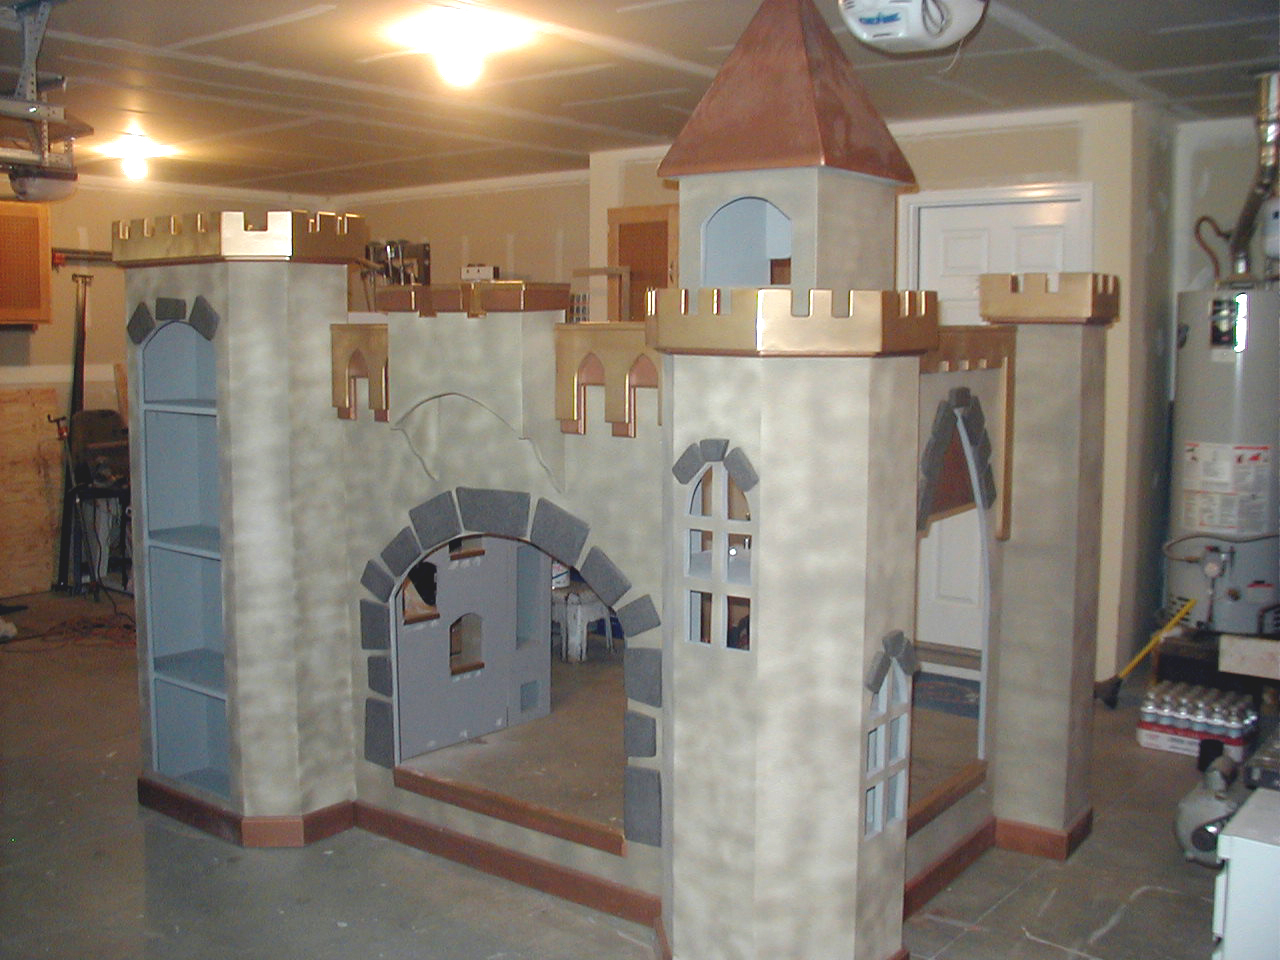 Castle built by Kurtis Leatham